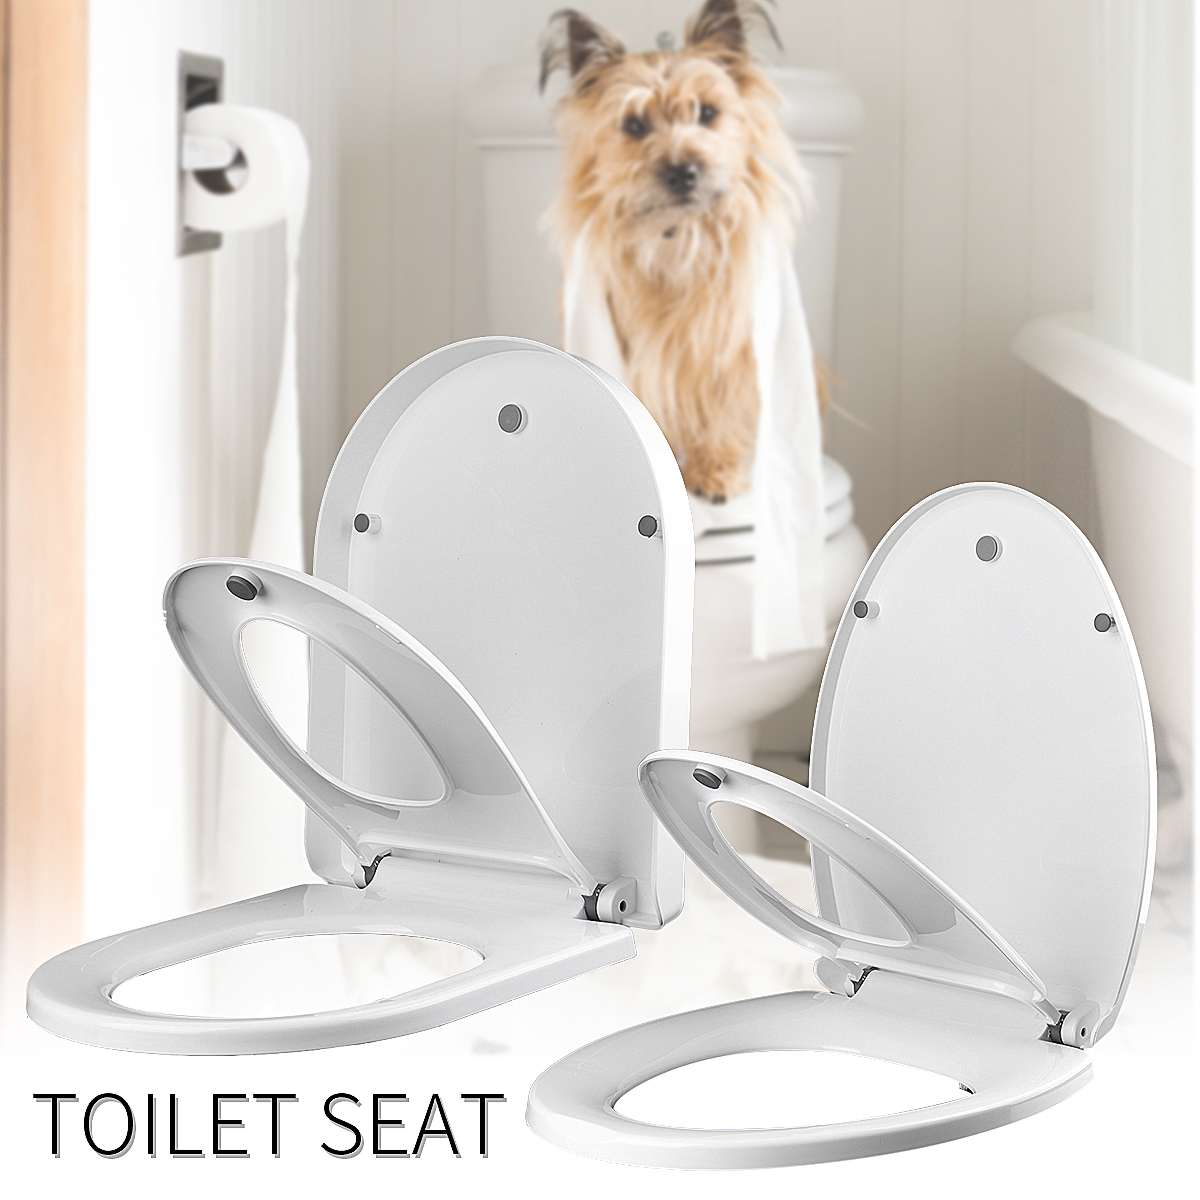 1Pcs U Type V Type Replacement Universal Toilet Seat Lid Cover Set Square Round Bathroom White Thicken 2Types Antibacterial